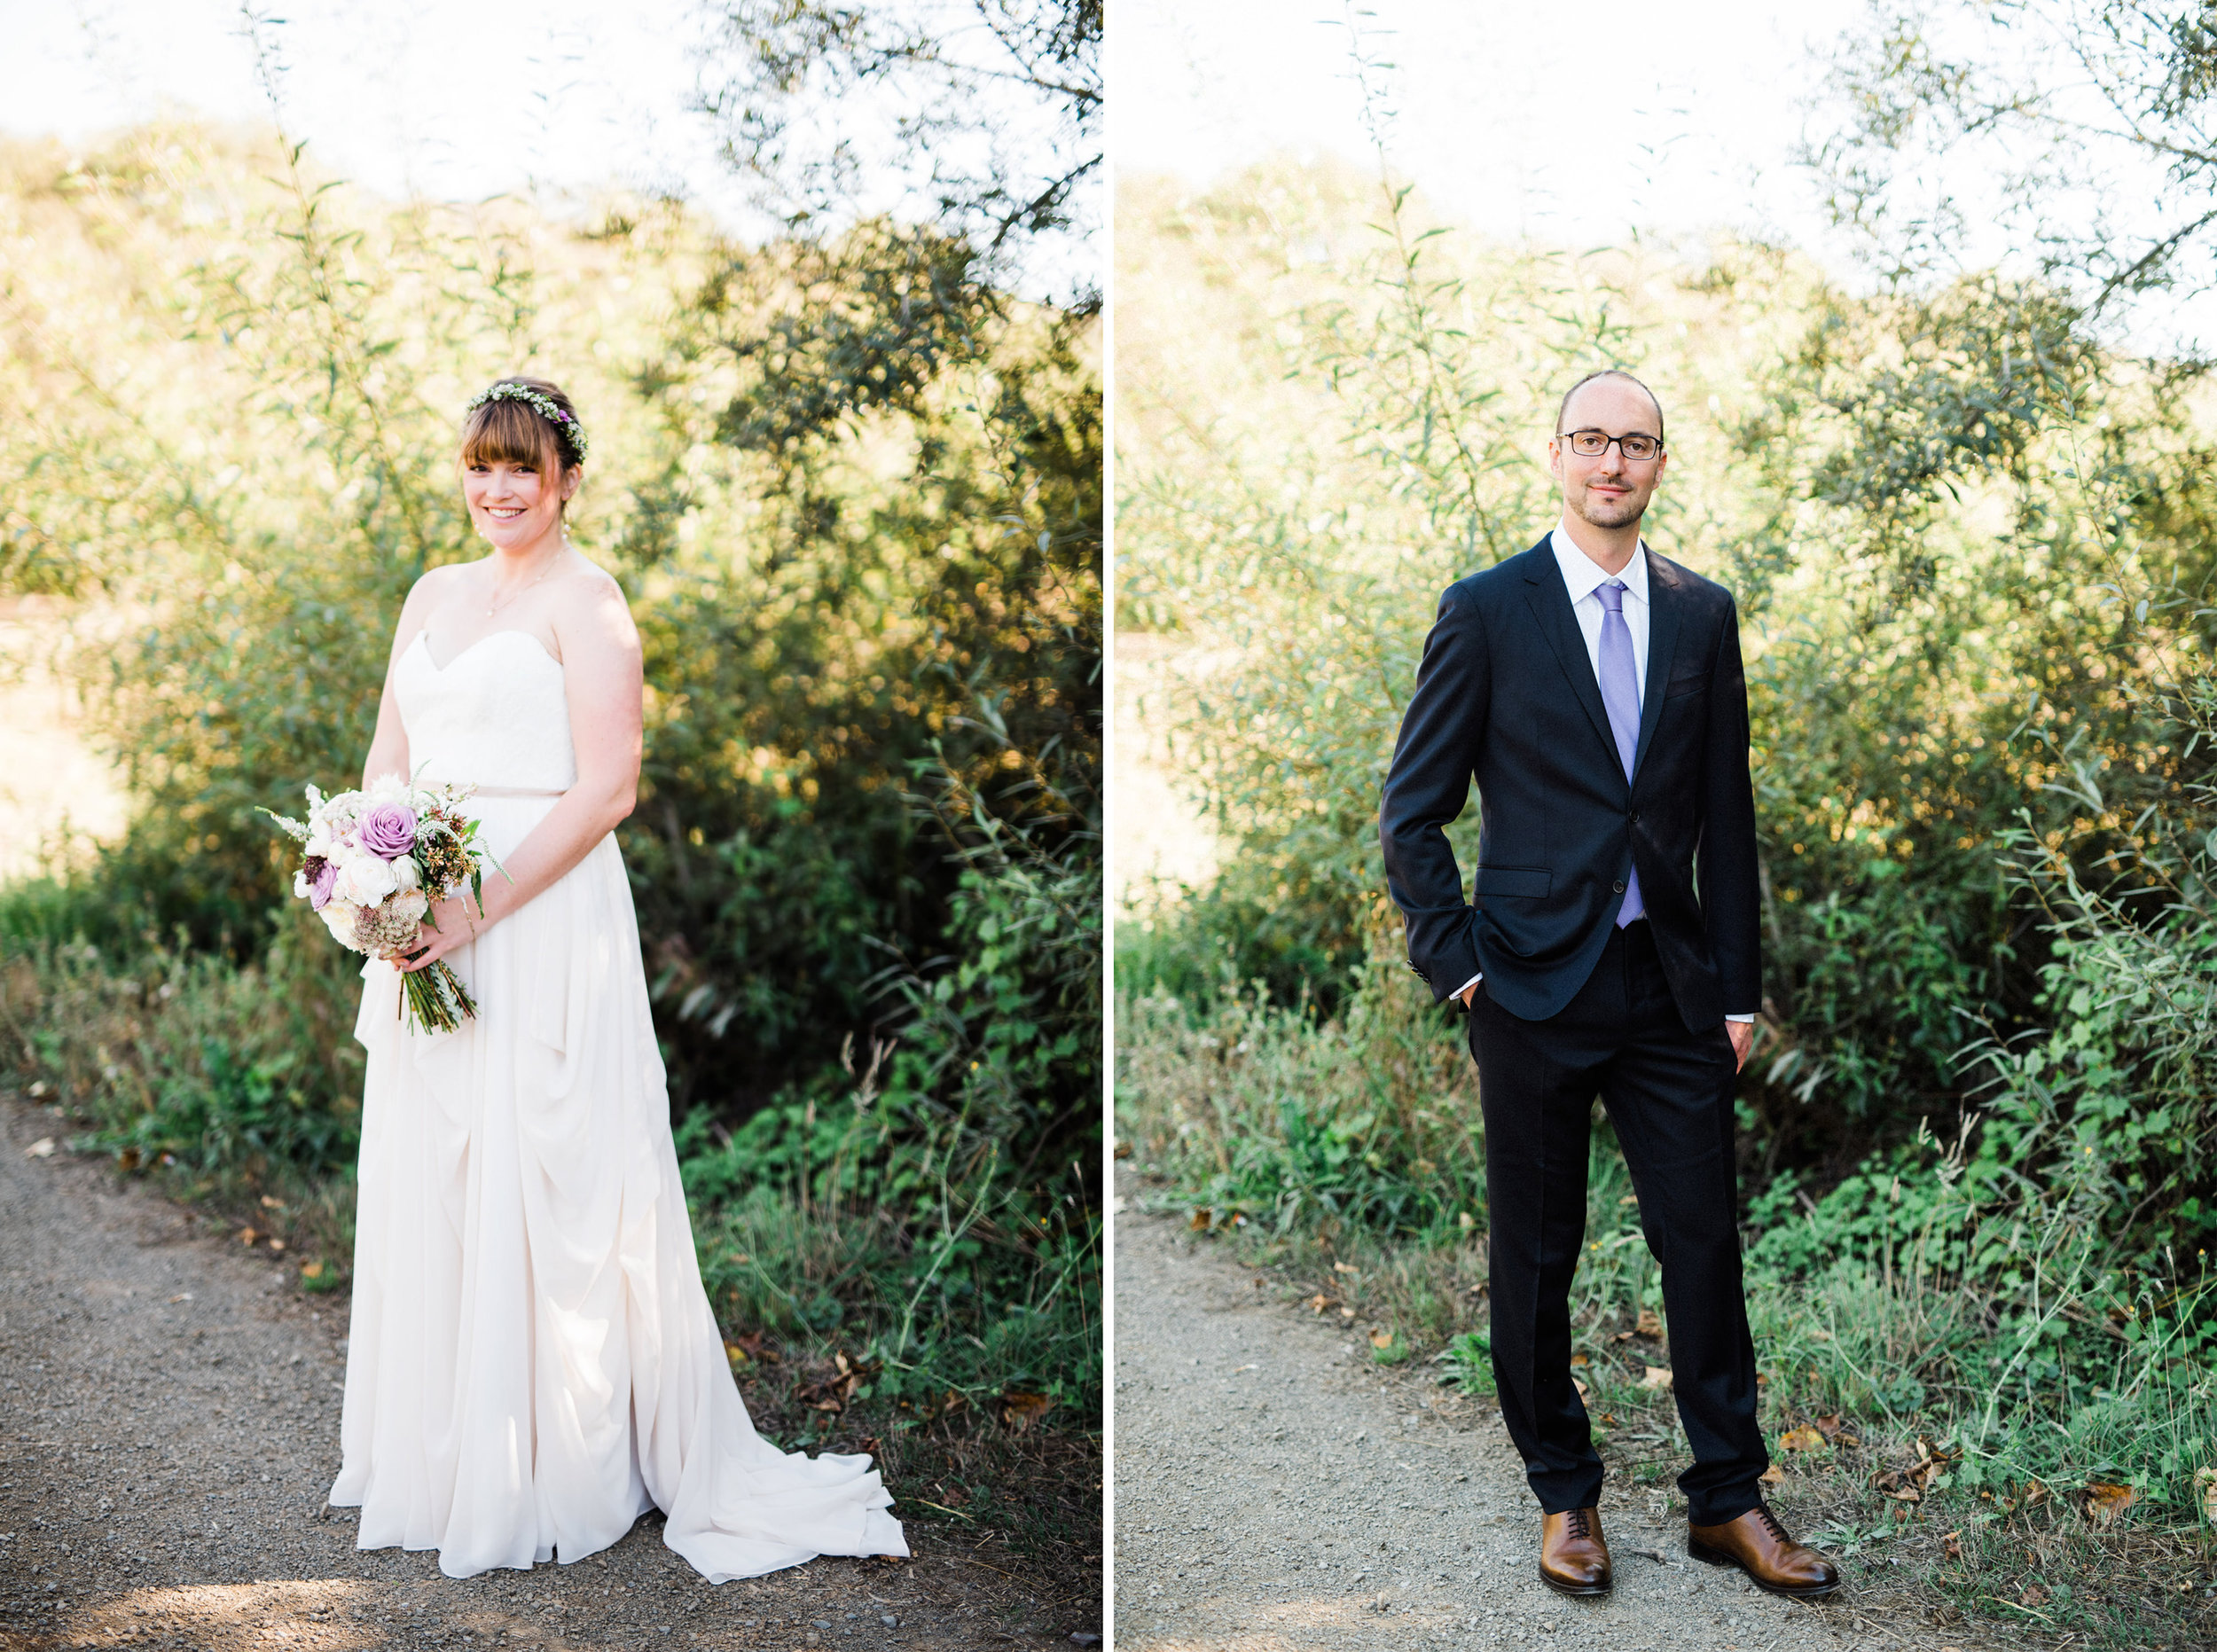 Pelican Inn Muir Beach Wedding-17.jpg